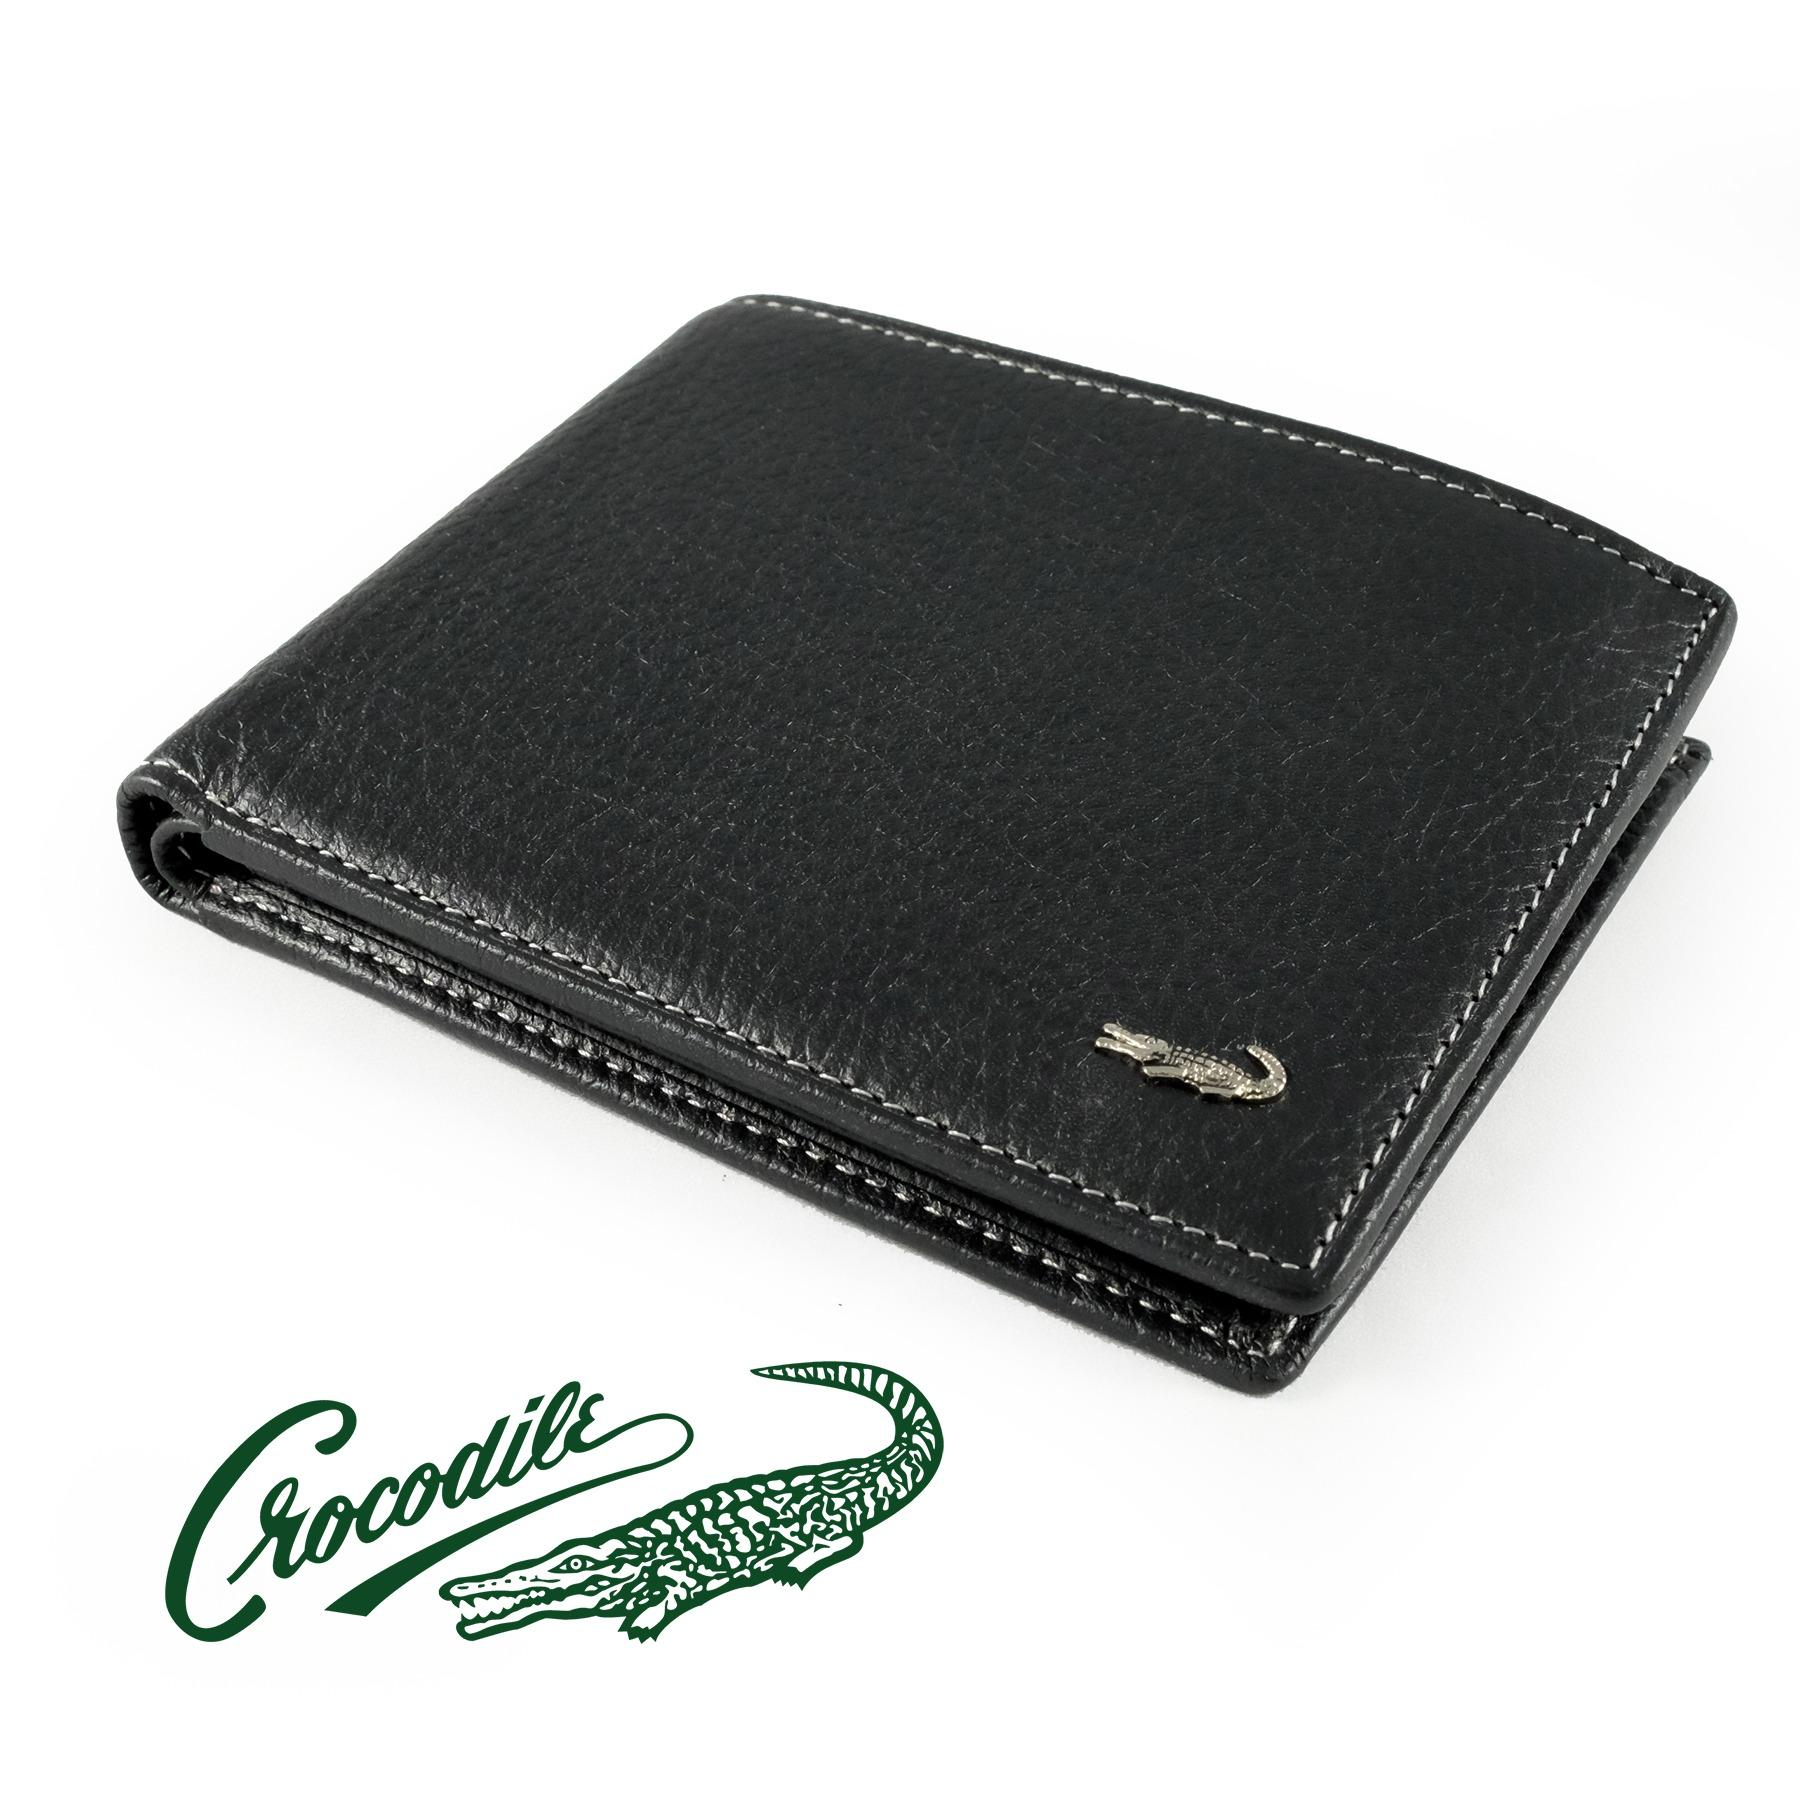 0203-11041 Dompet Pria Men Wallet Leather Kulit Crocodile Original